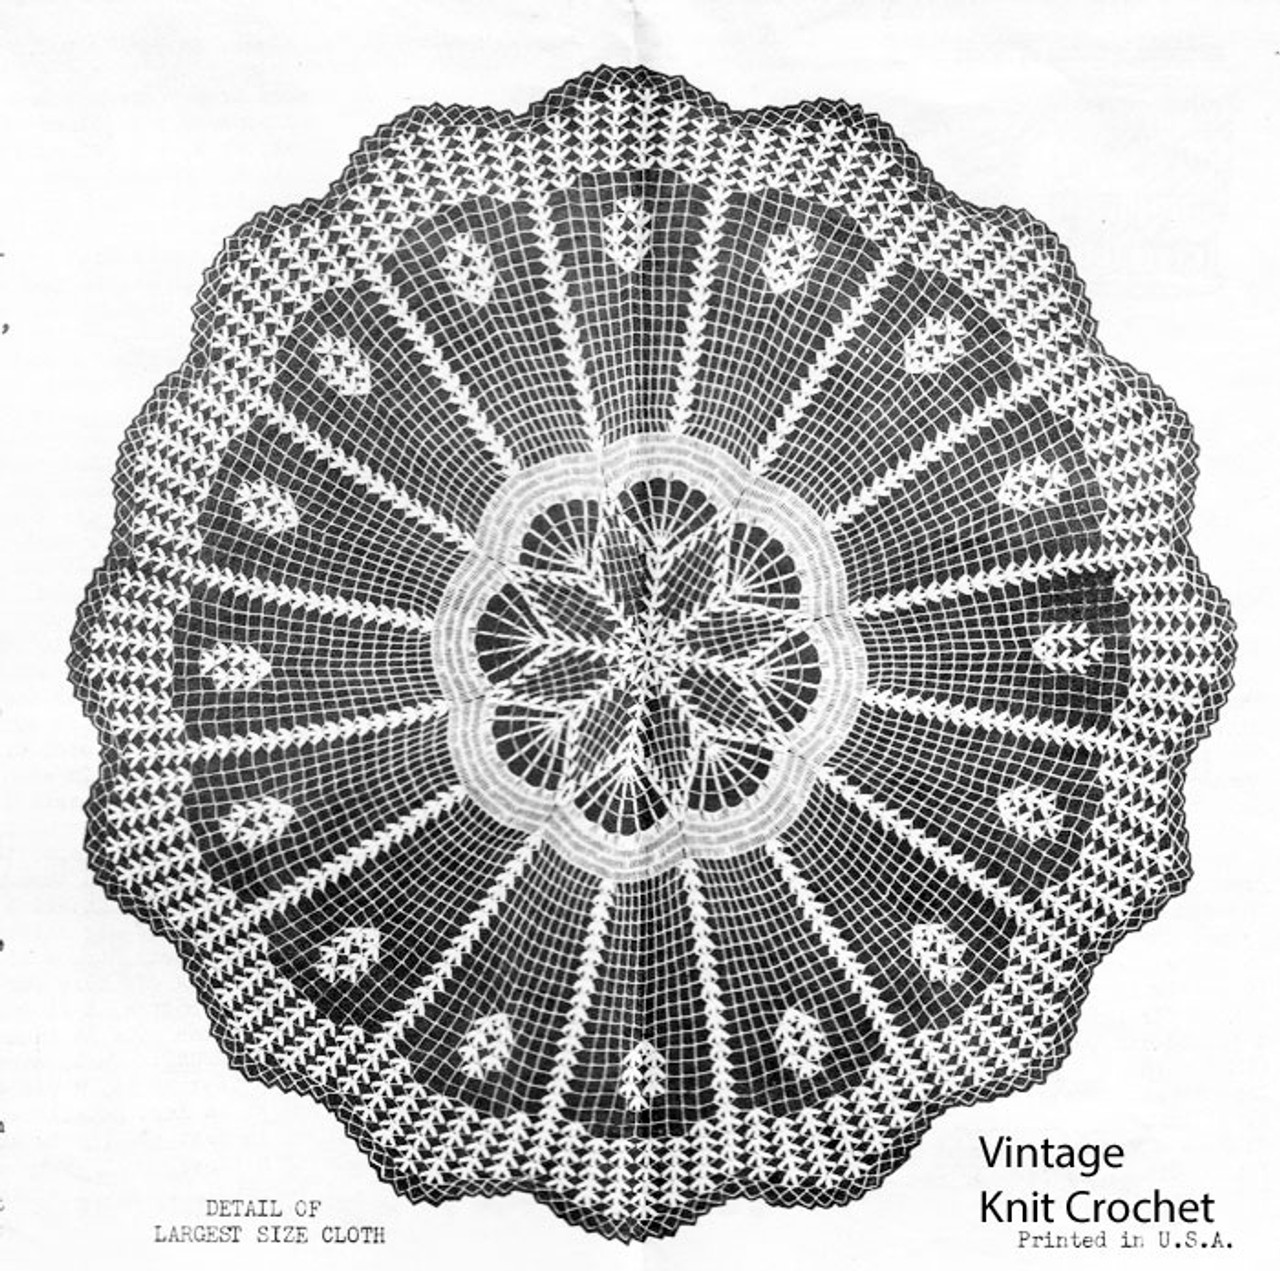 Vintage Crochet Cloth Pattern Illustration, Laura Wheeler 2312